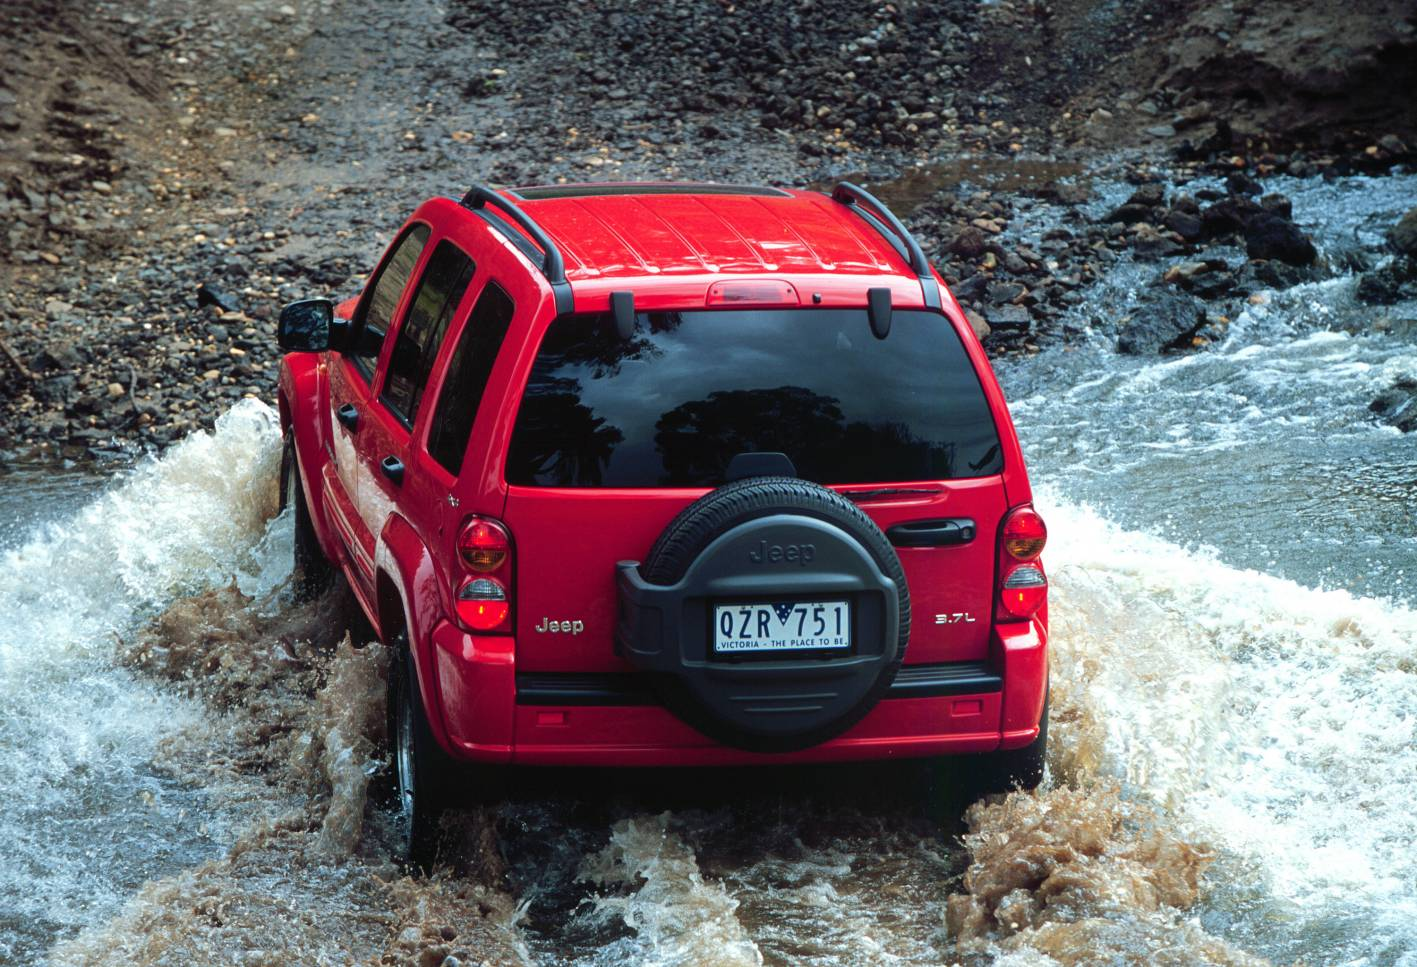 2009 jeep cherokee rear.jpg